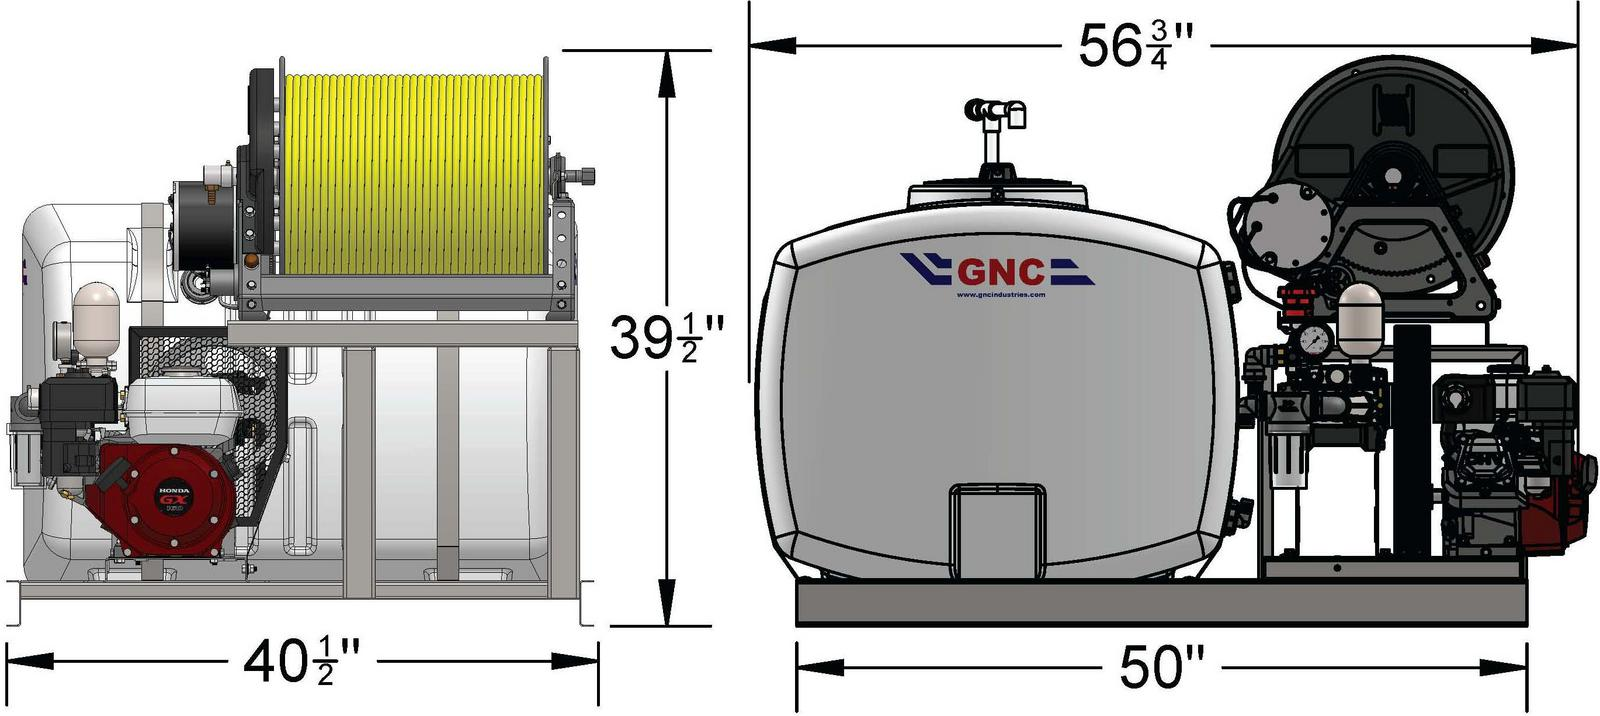 GNC Industries 2019 100 Gallon Commercial Skid Sprayer for